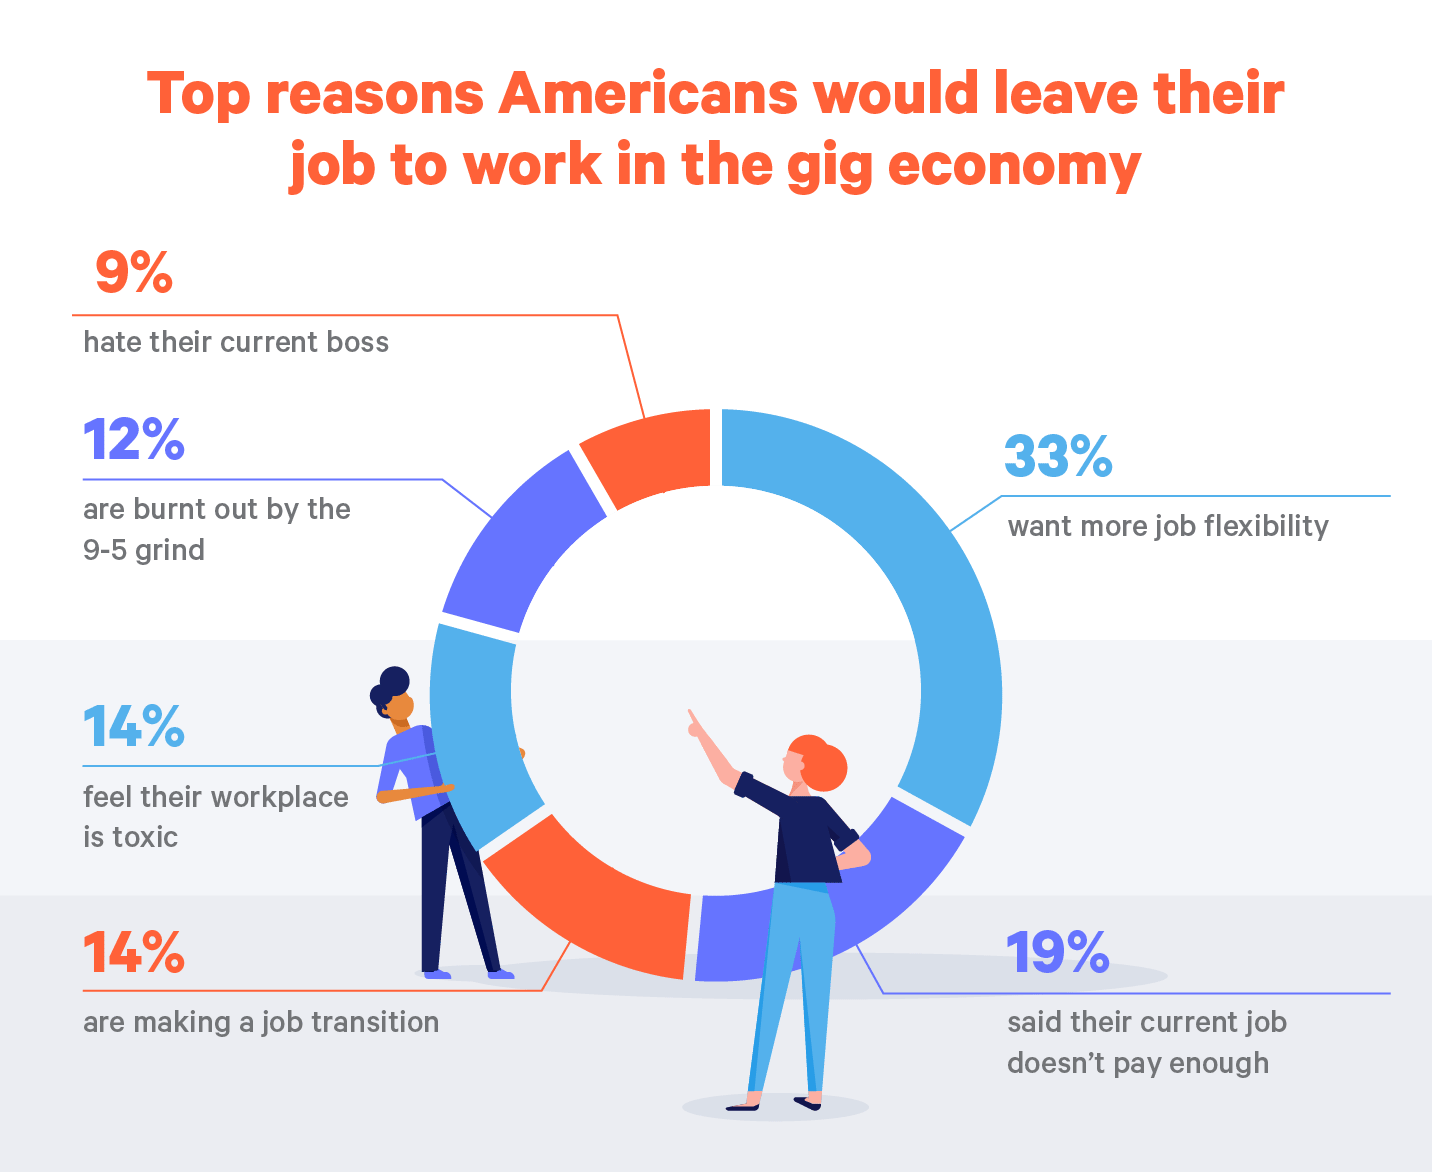 reasons Americans would work in the gig economy pie chart